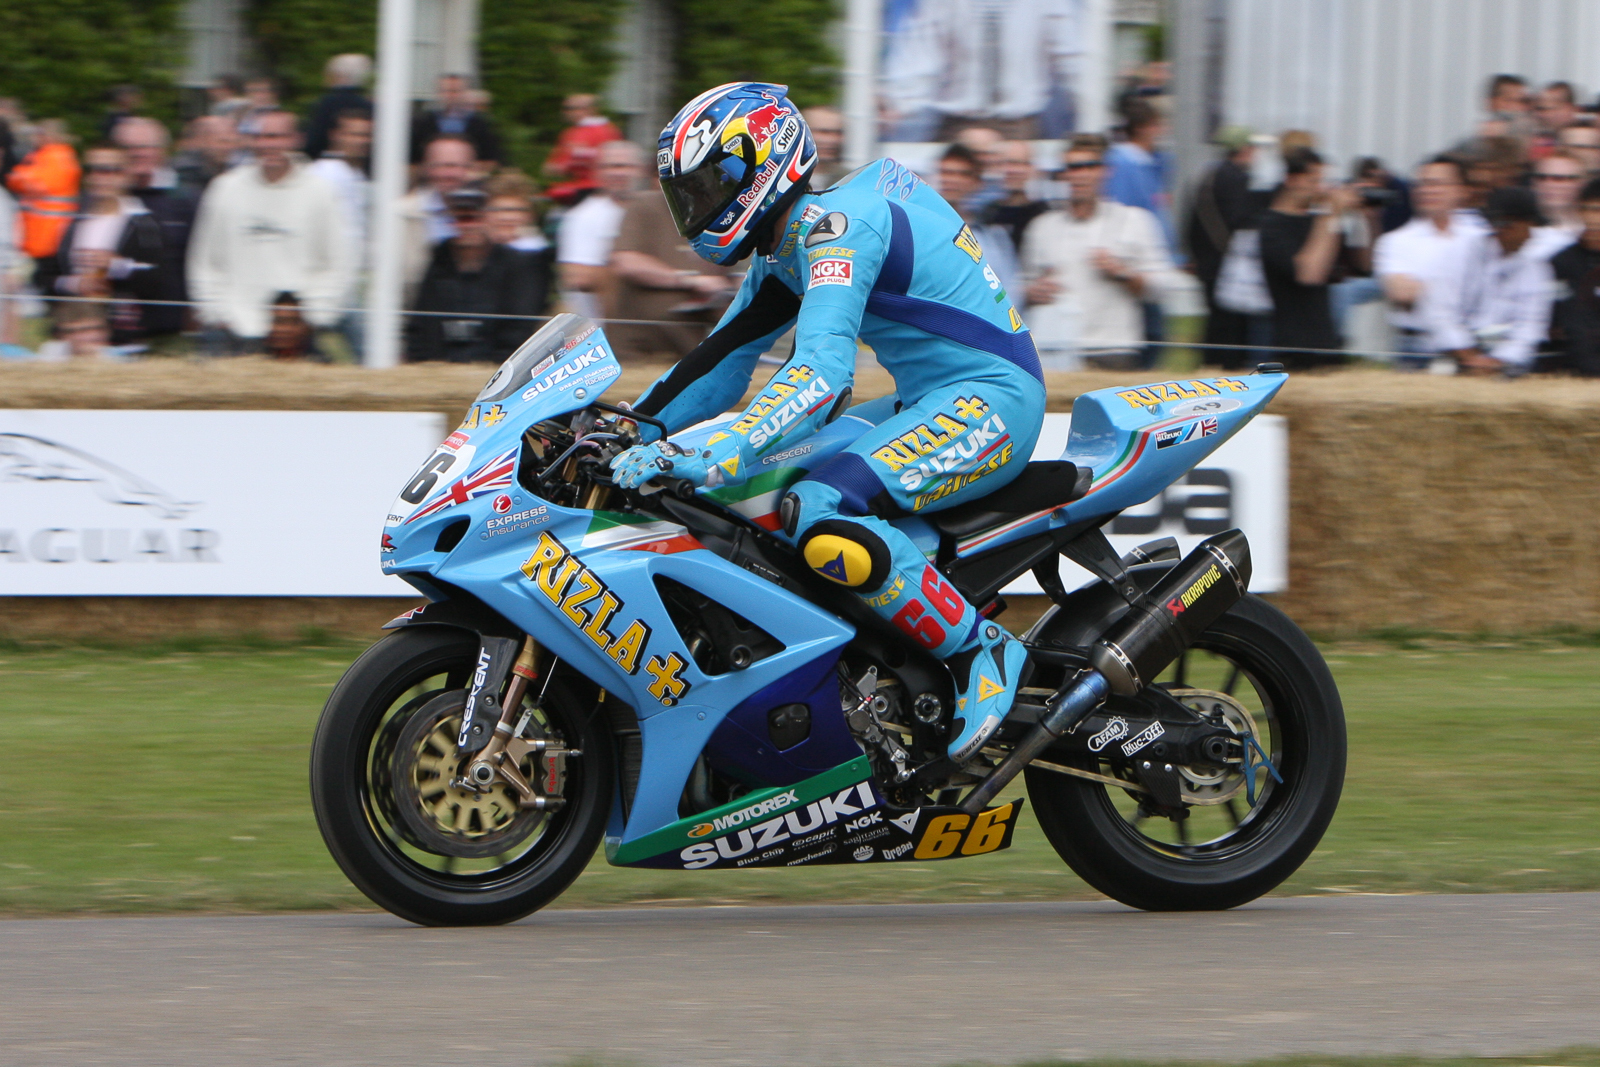 20080711 - Goodwood Festival of Speed -080711 -010